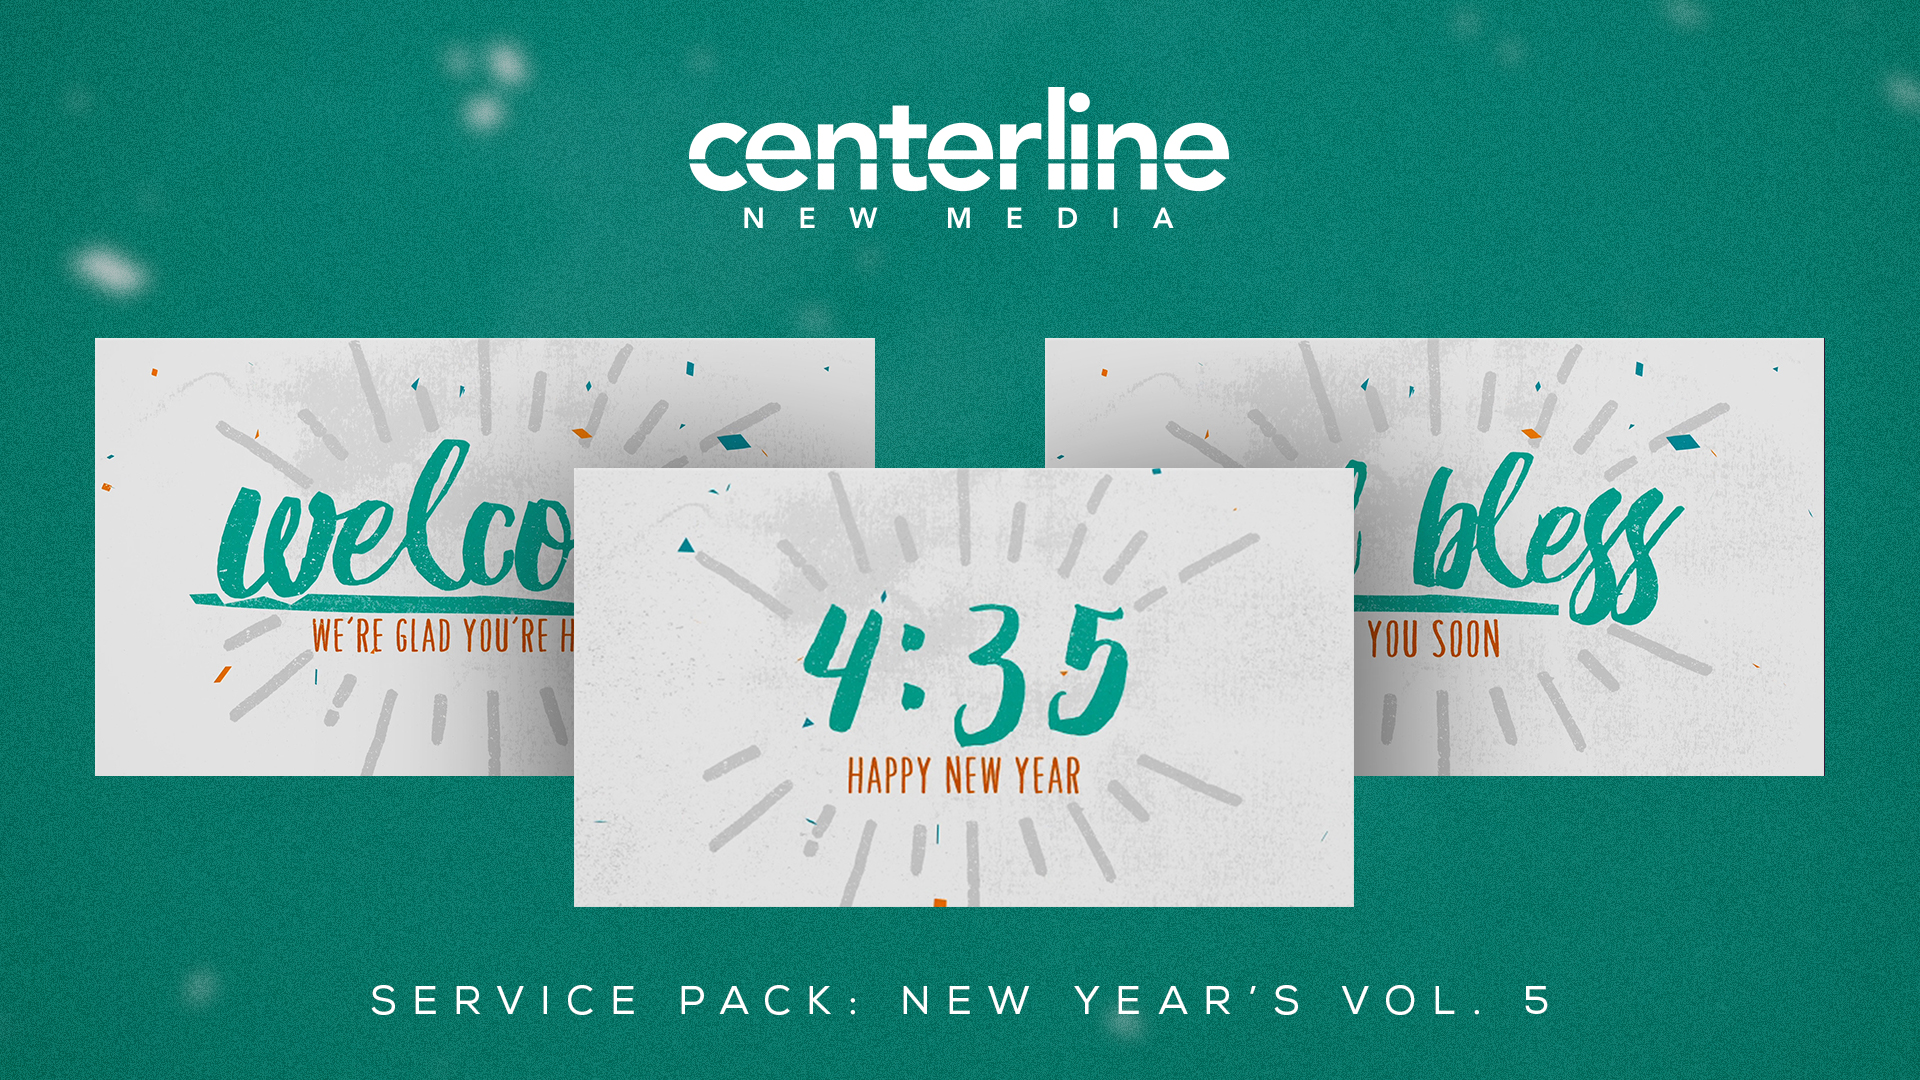 SERVICE PACK: NEW YEAR'S VOL 5